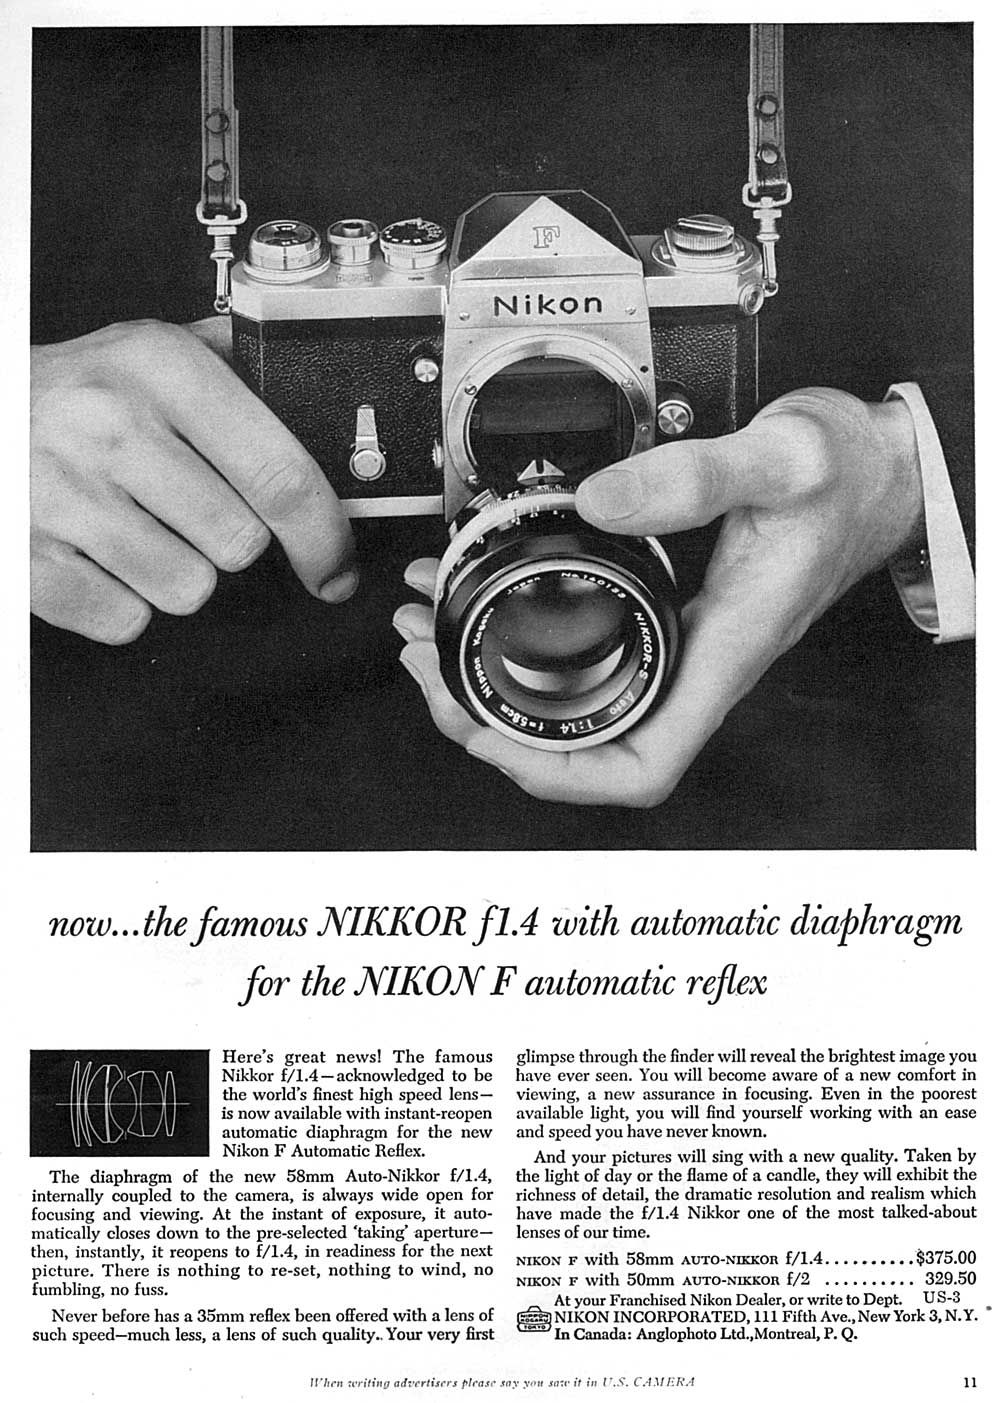 Vintage Nikon Advertisements From The 1950s And 1960s Vintage